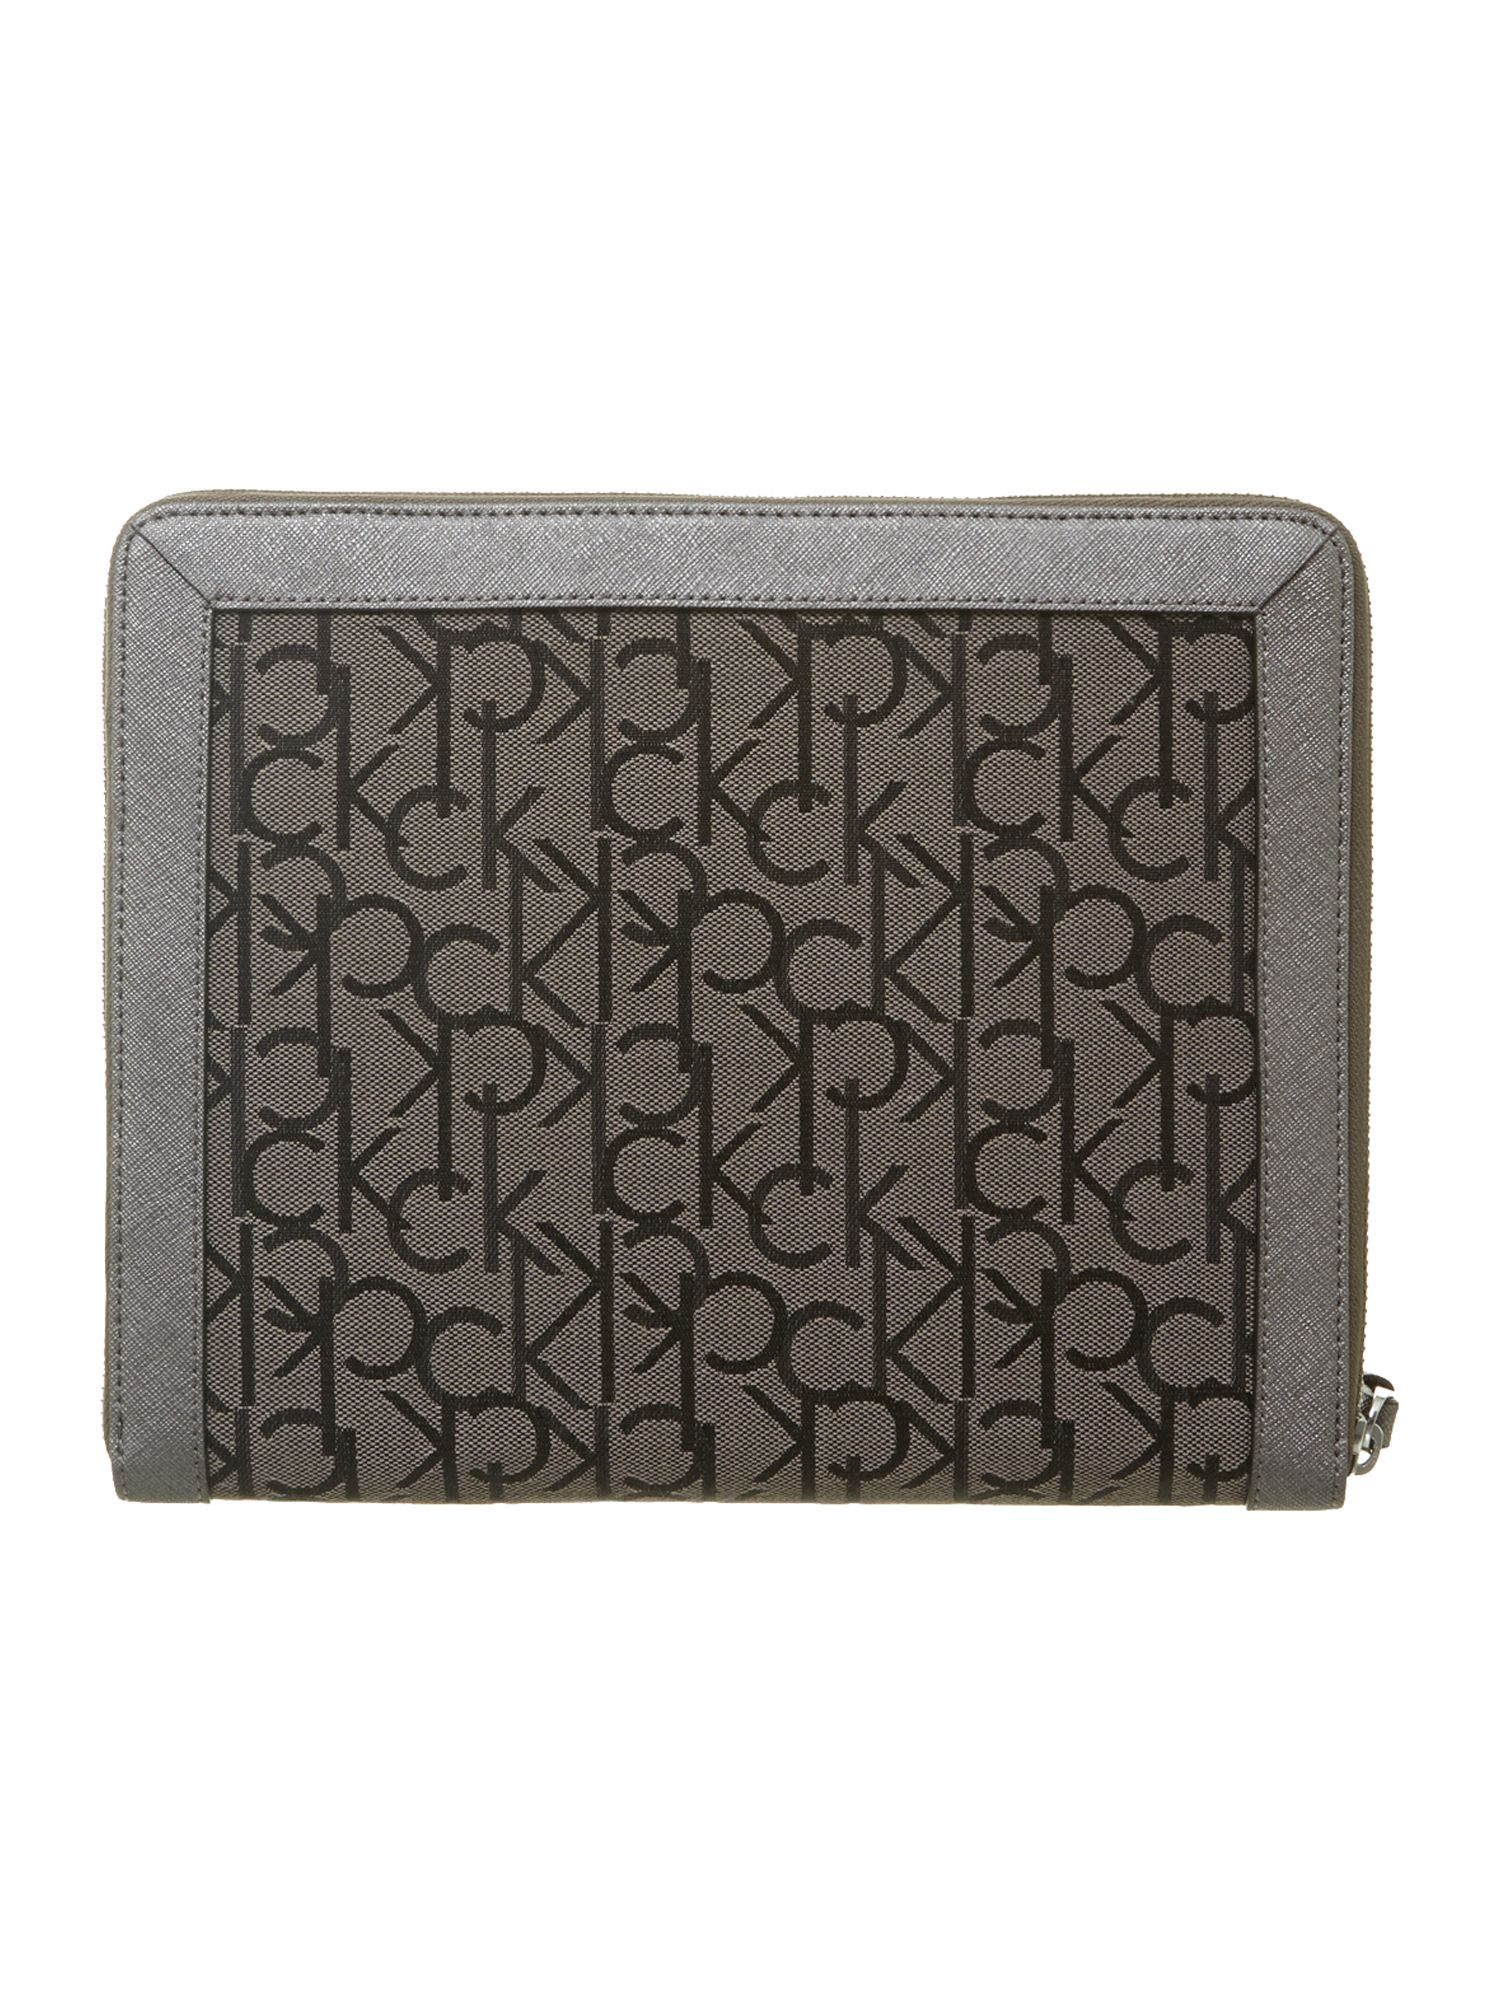 Jaquard logo metallic ipad case